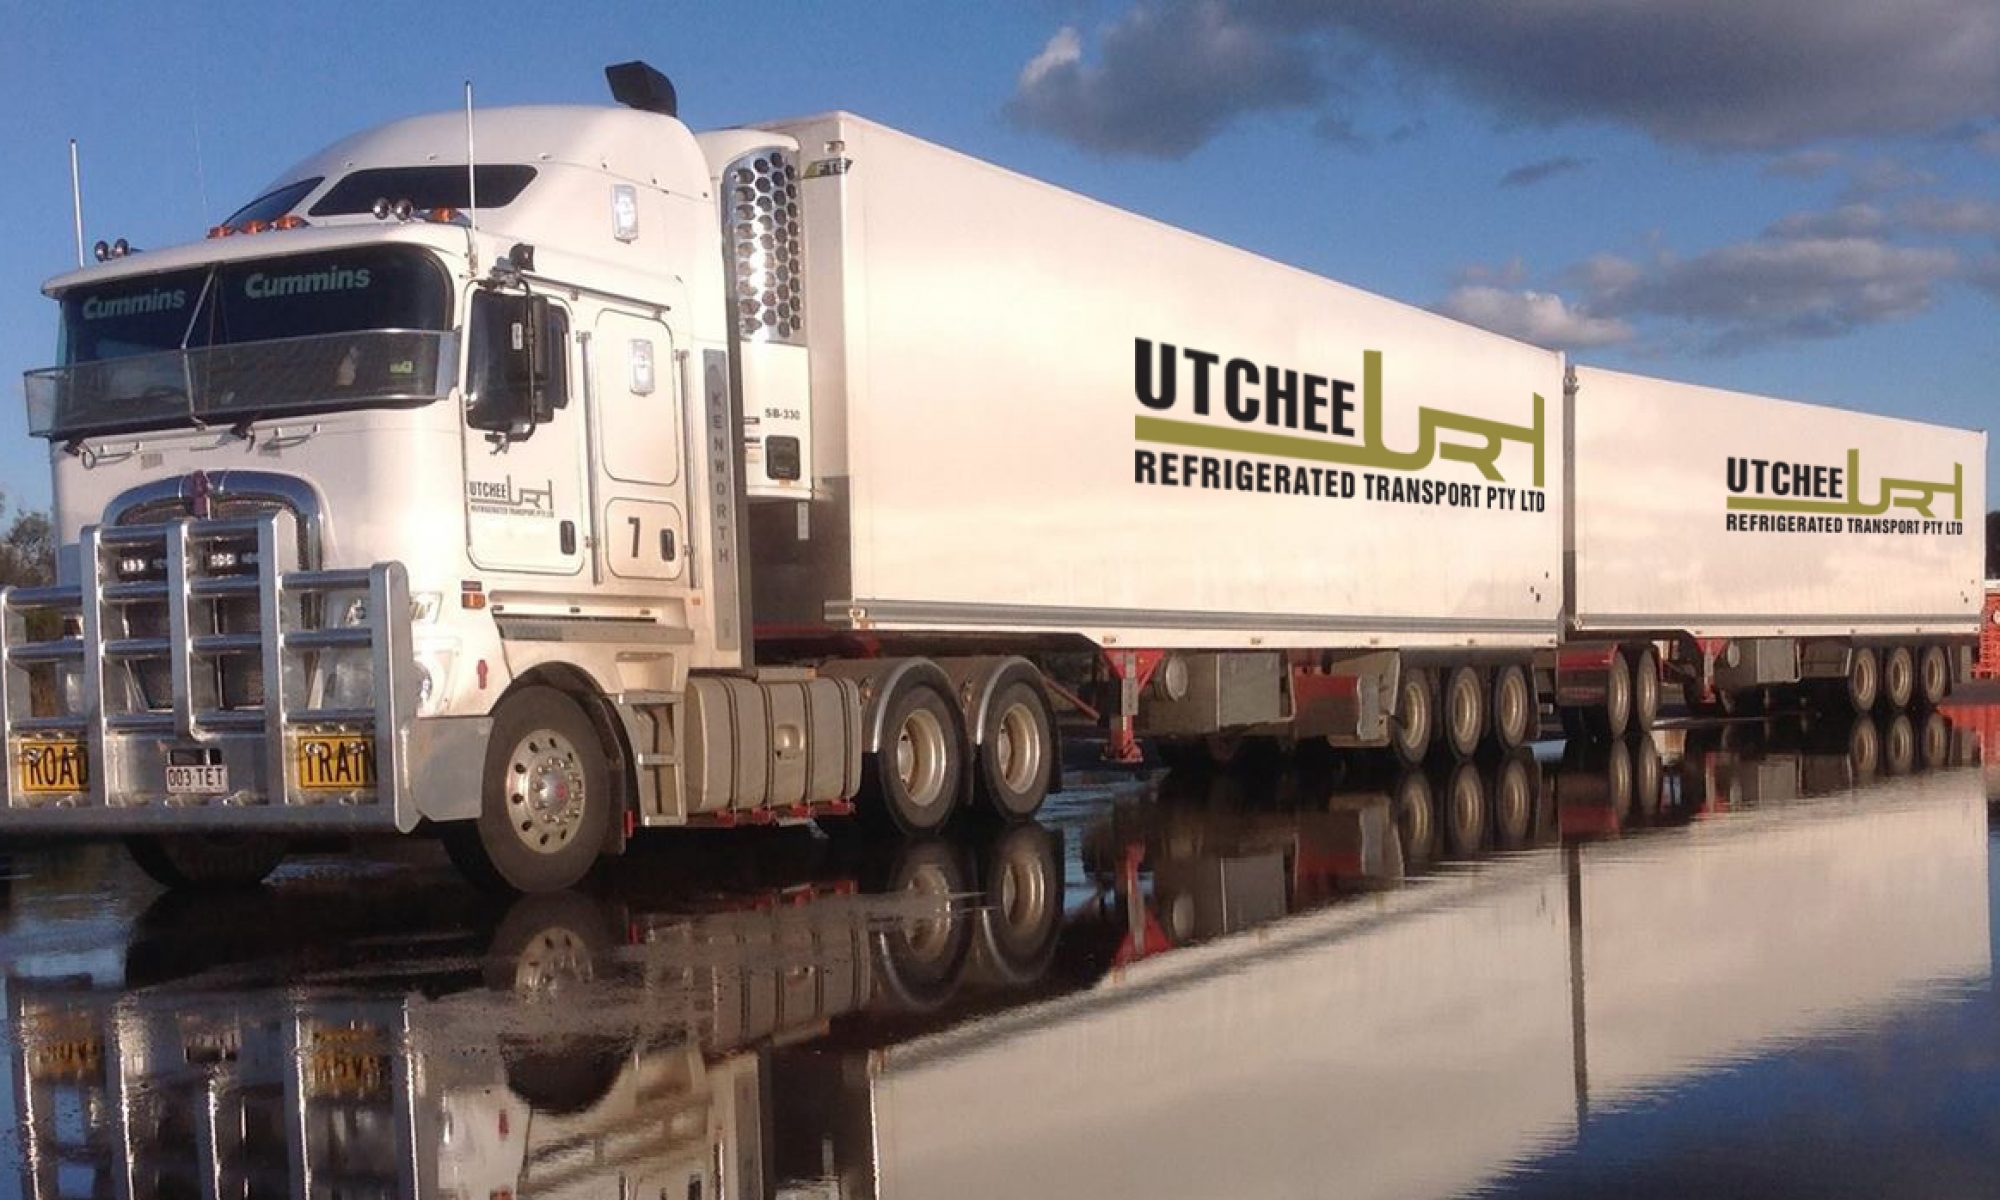 Utchee Refrigerated Transport